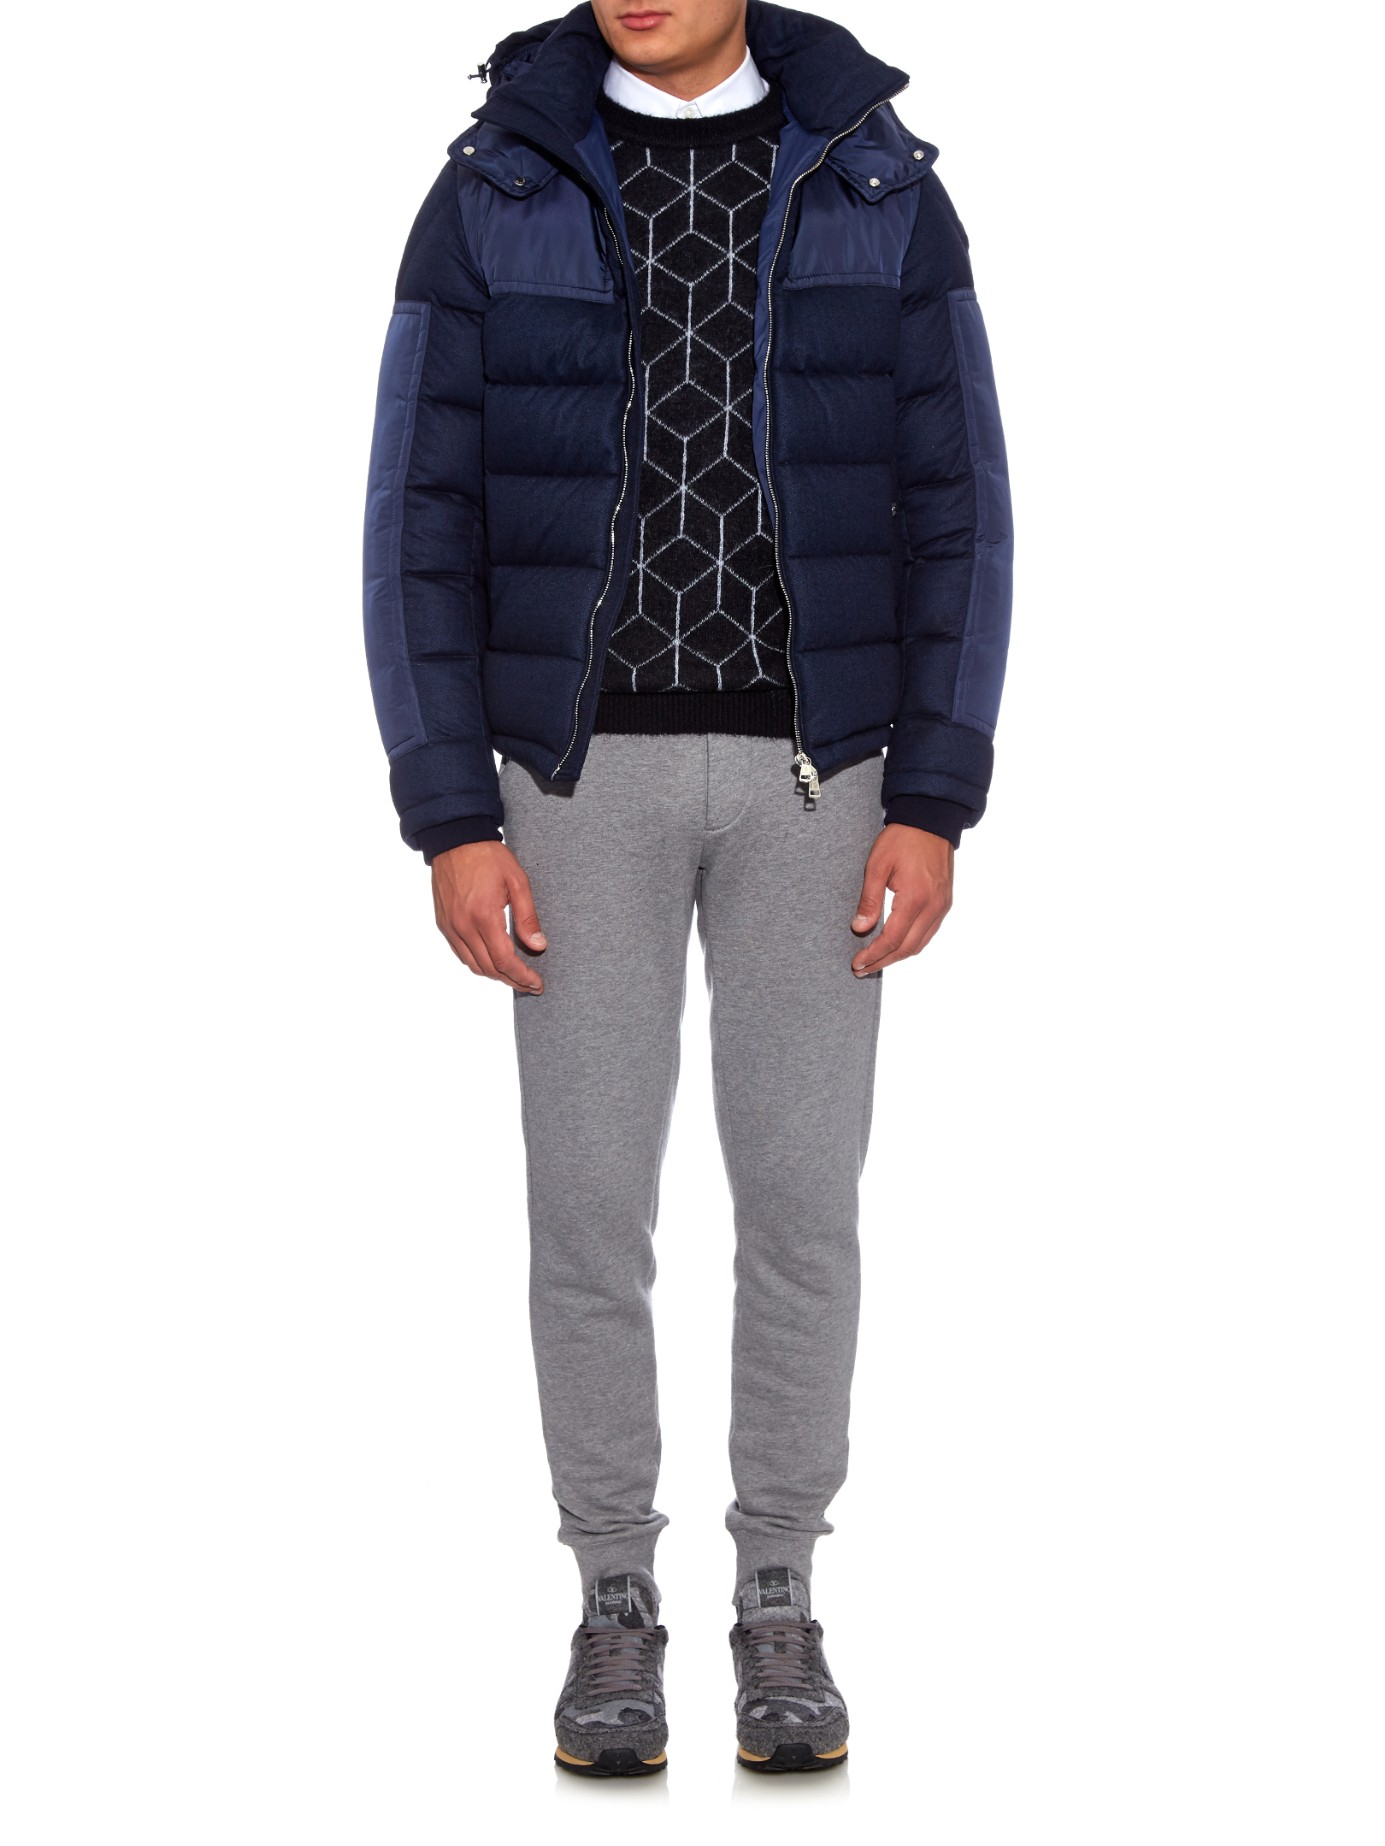 Lyst Moncler Severac Panelled Wool Flanel Coat In Blue For Men Navy Gallery